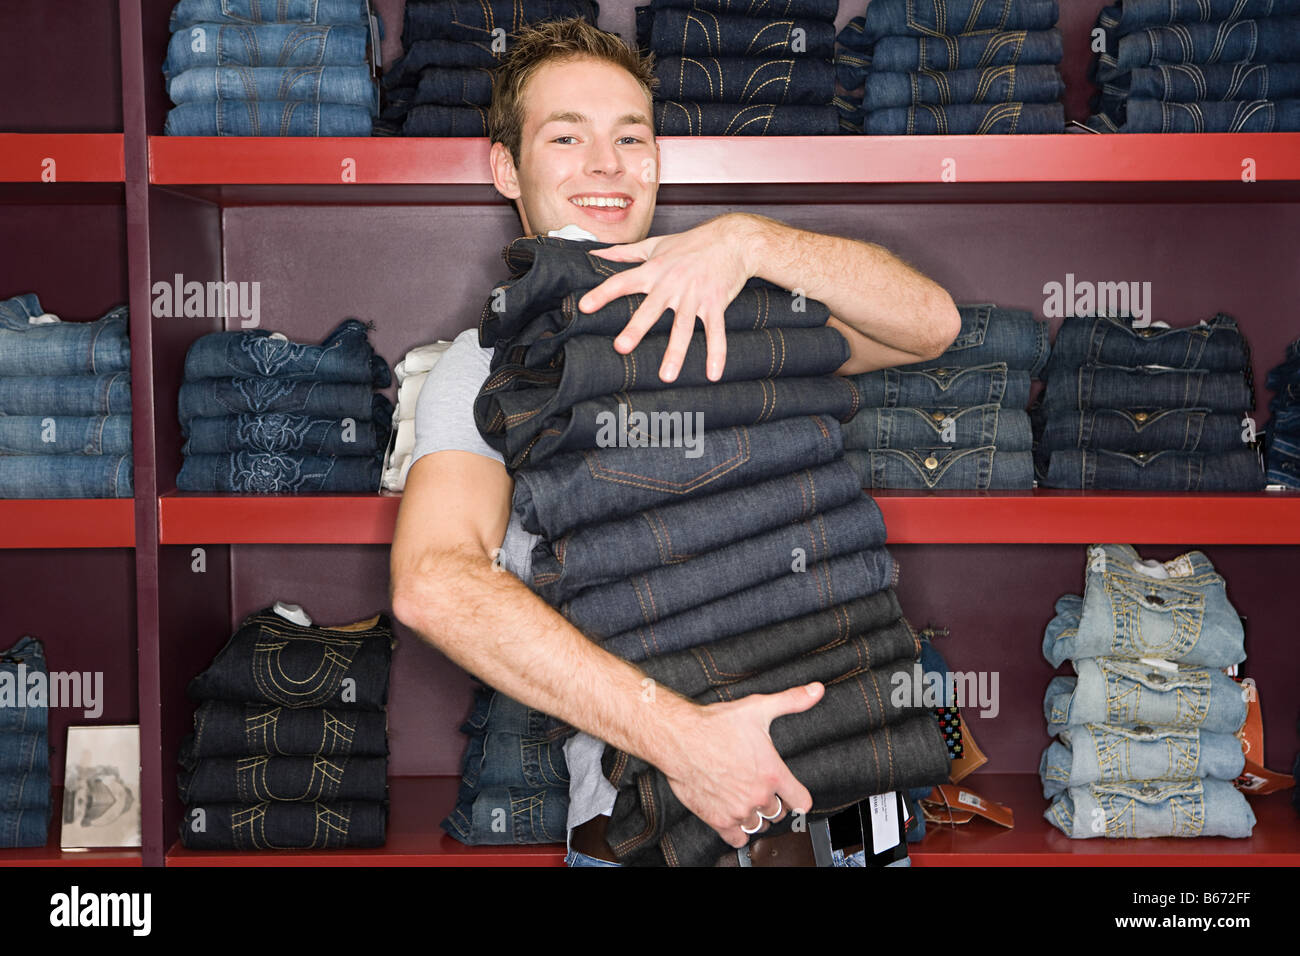 Man holding a stack of jeans - Stock Image